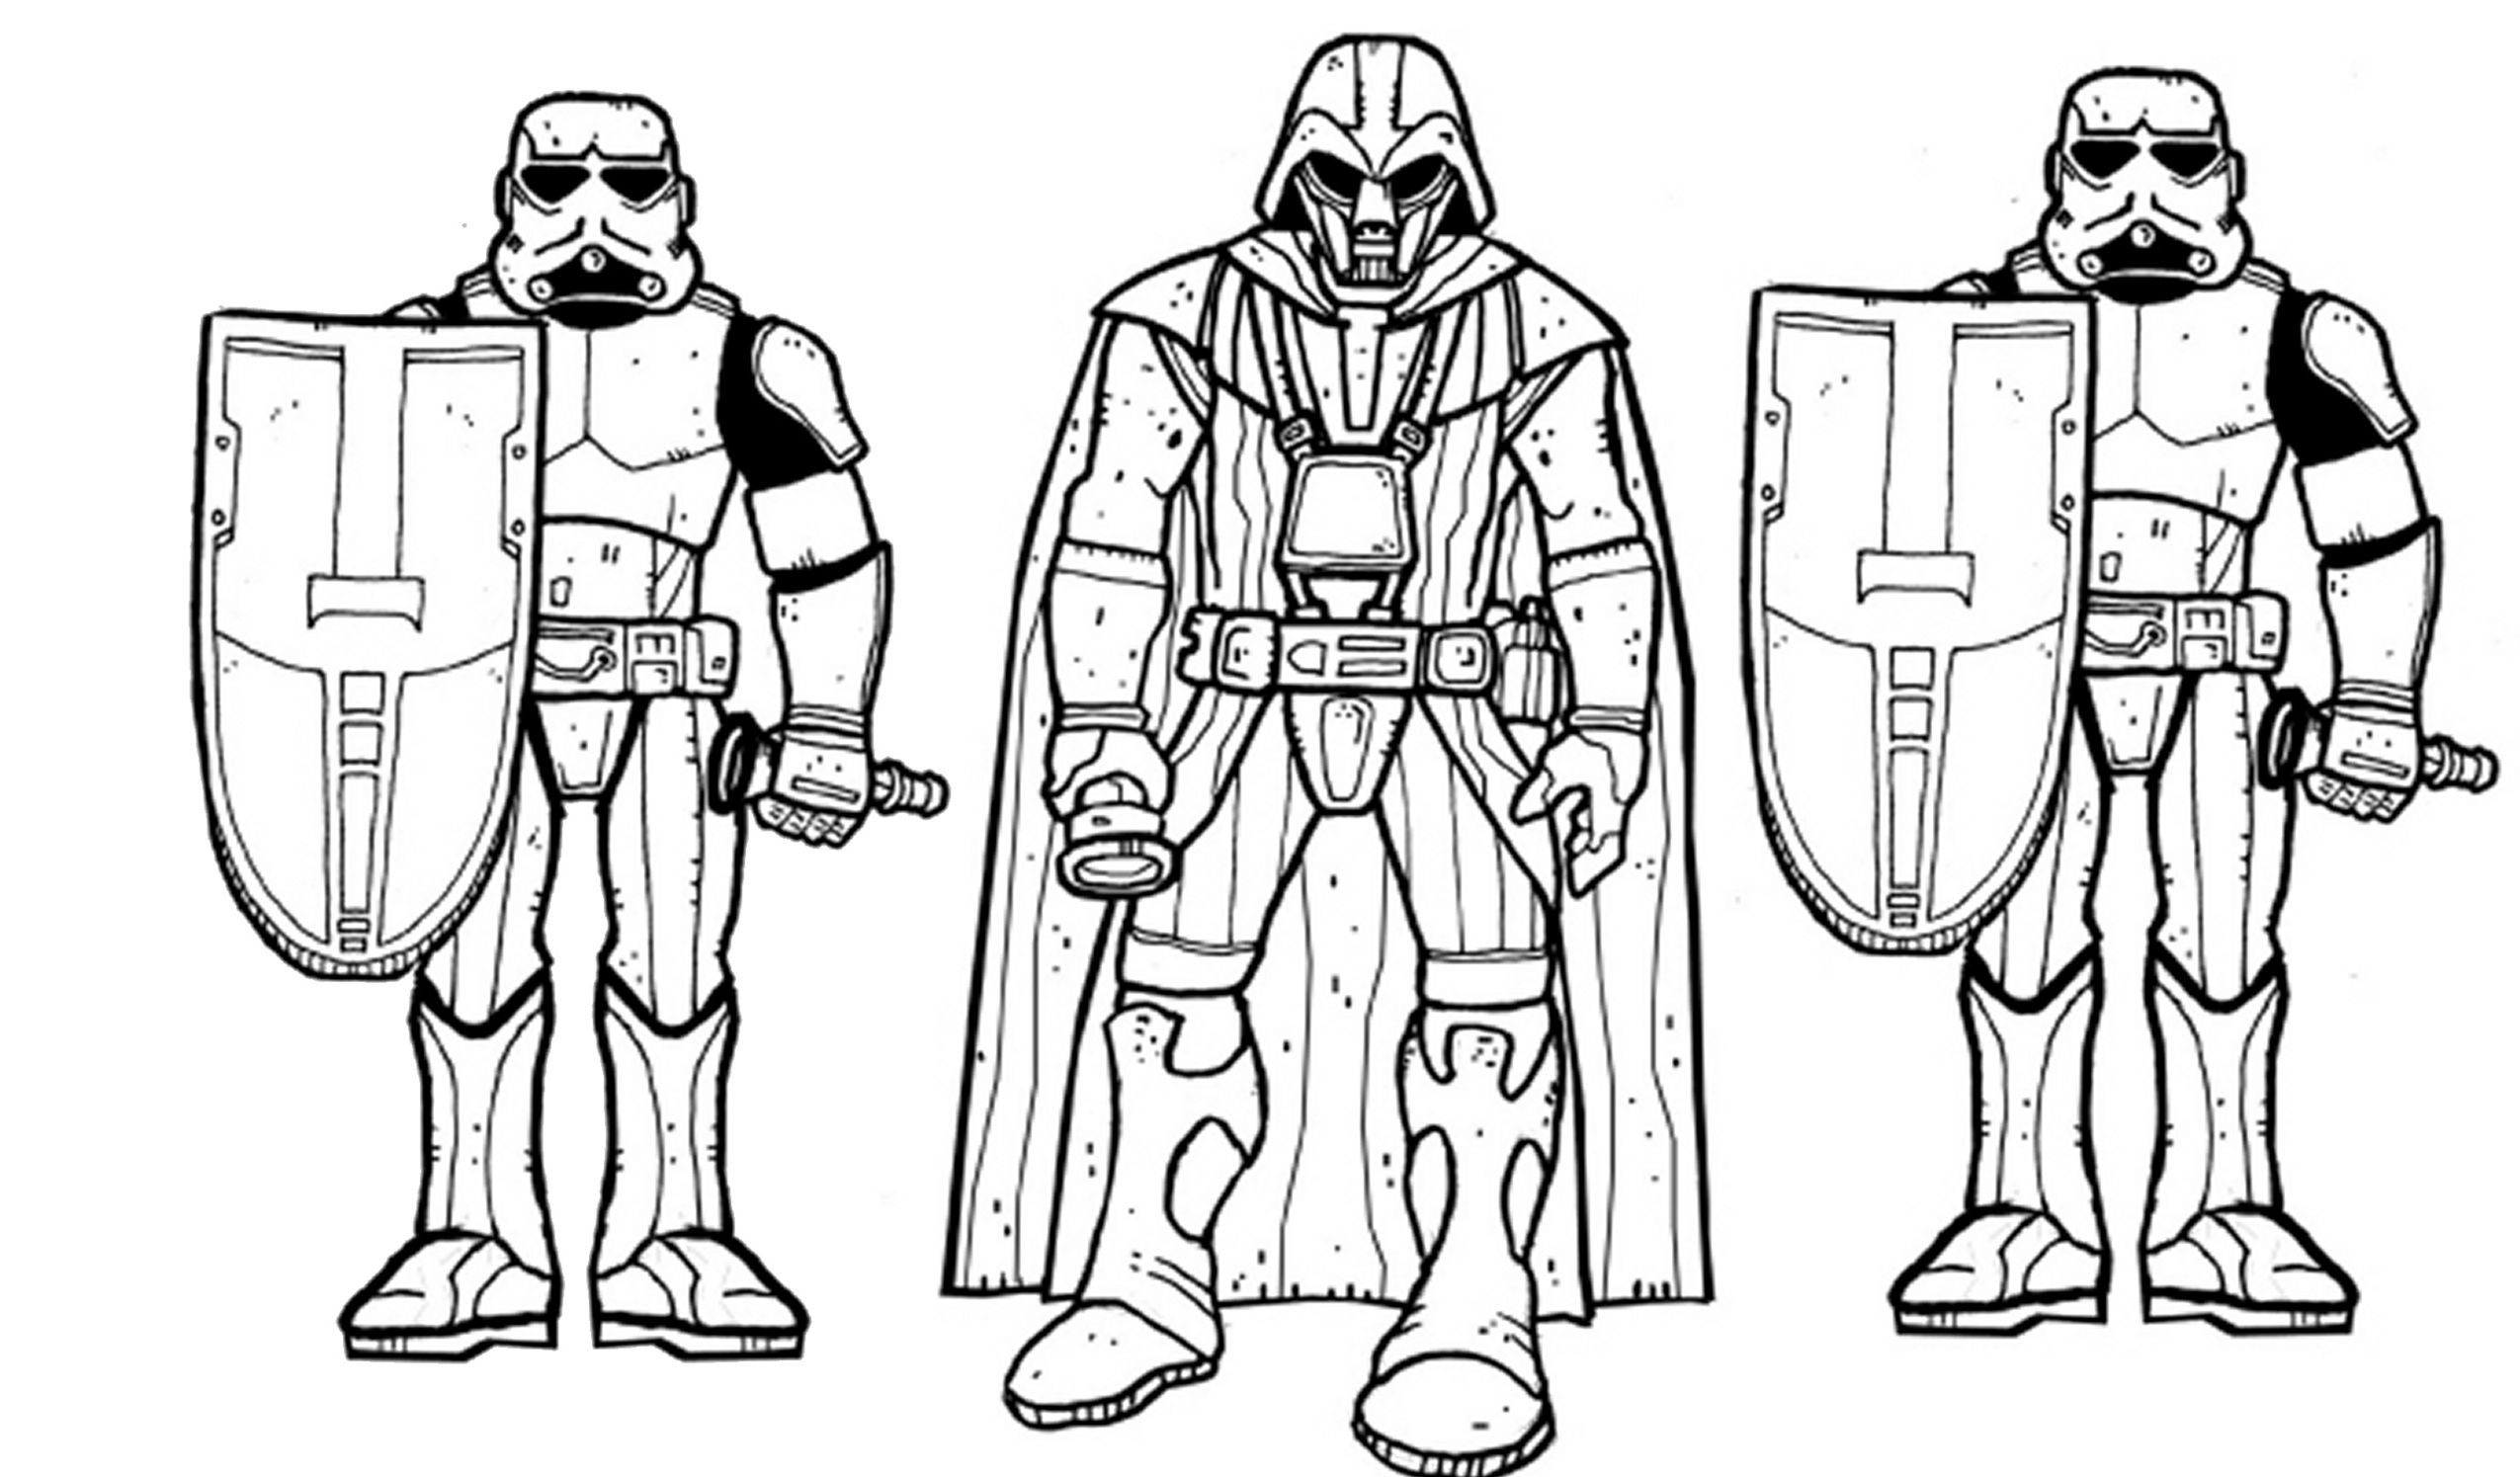 Darth Vader And Storm Troopers Coloring Pages Coloring Pages For ...